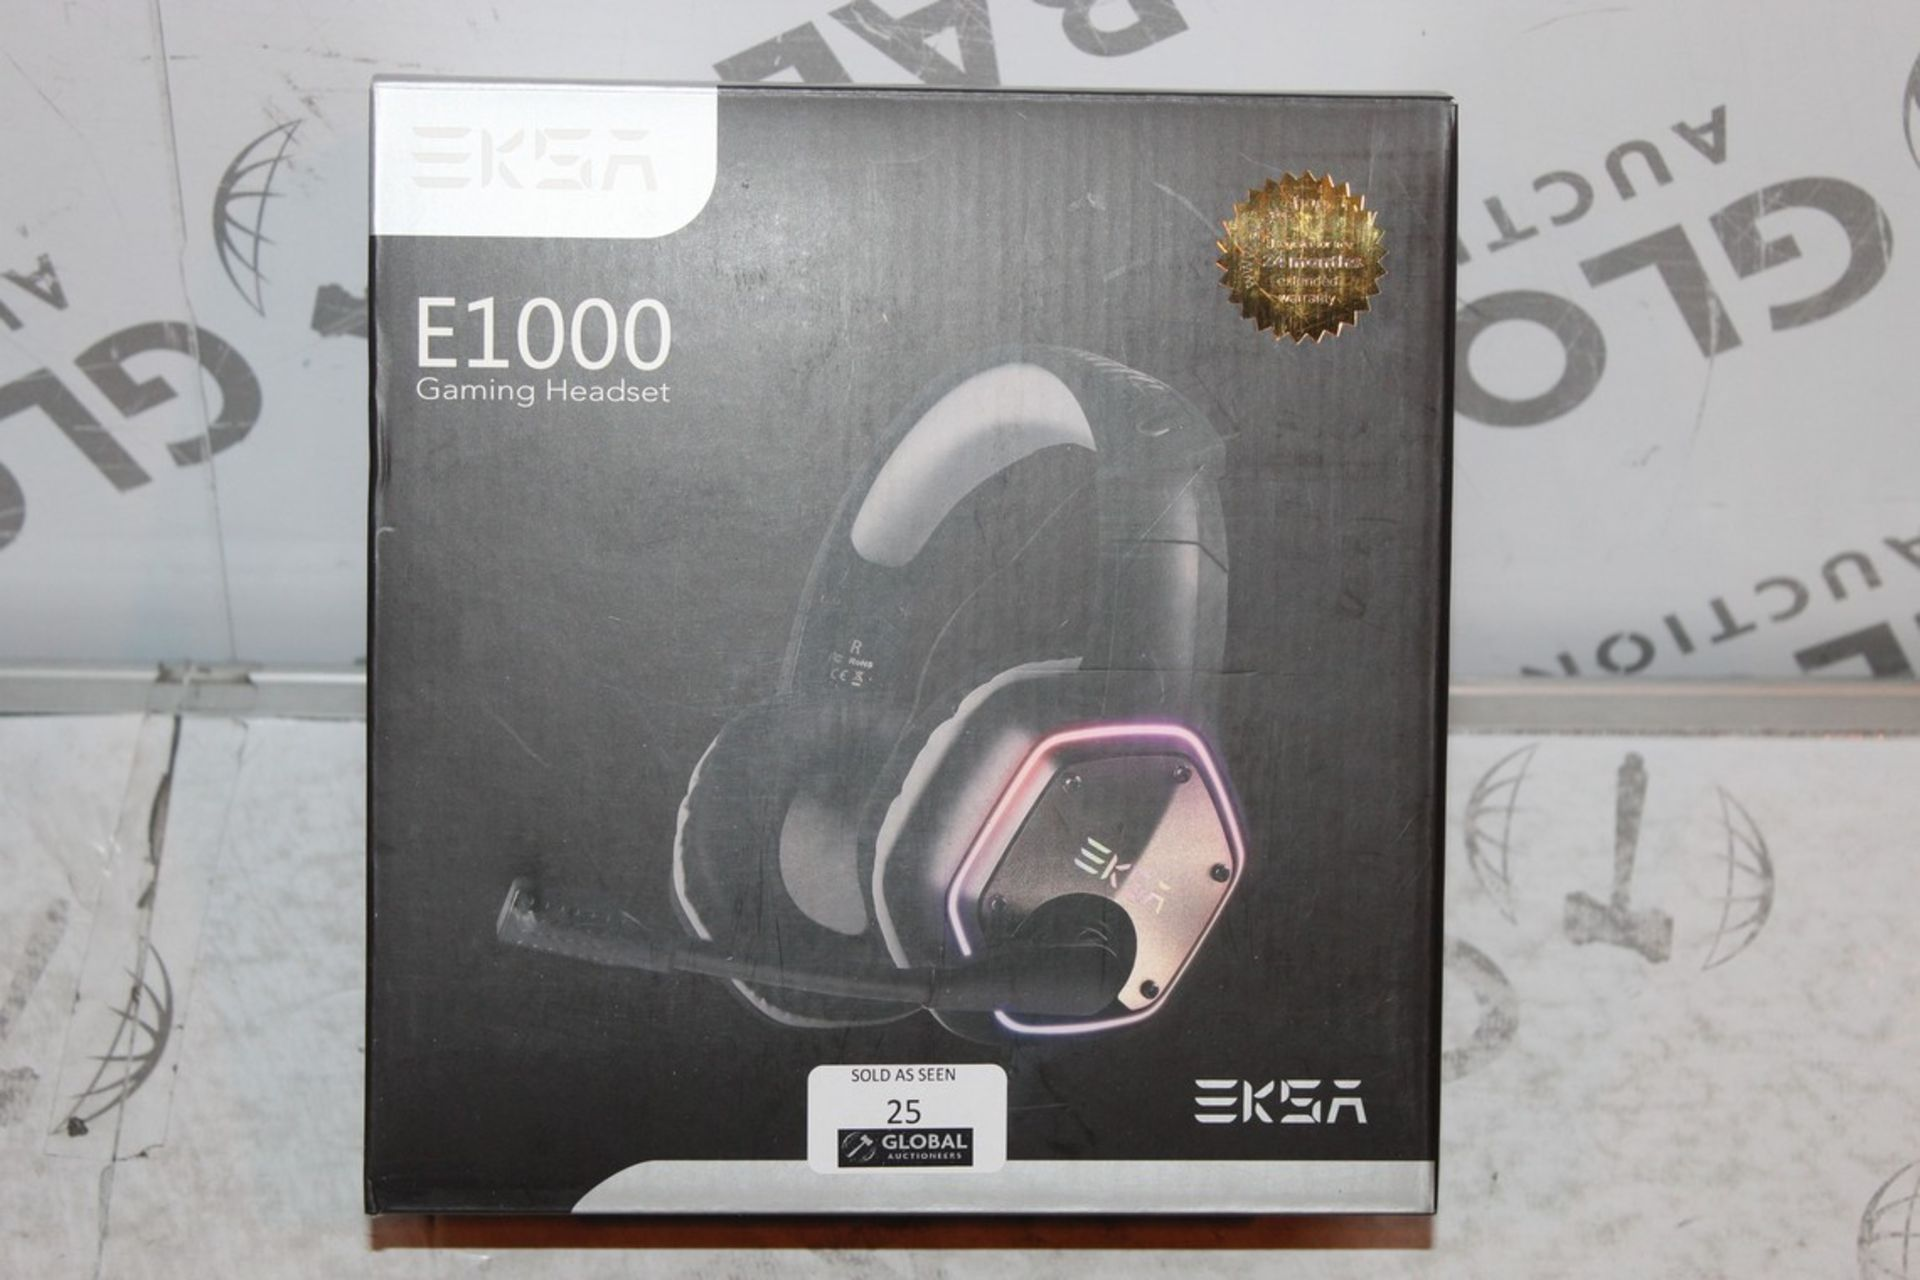 Lot 25 - Boxed Pair of EKSA E1000, Gaming Headphones with Microphone, RRP£45.00